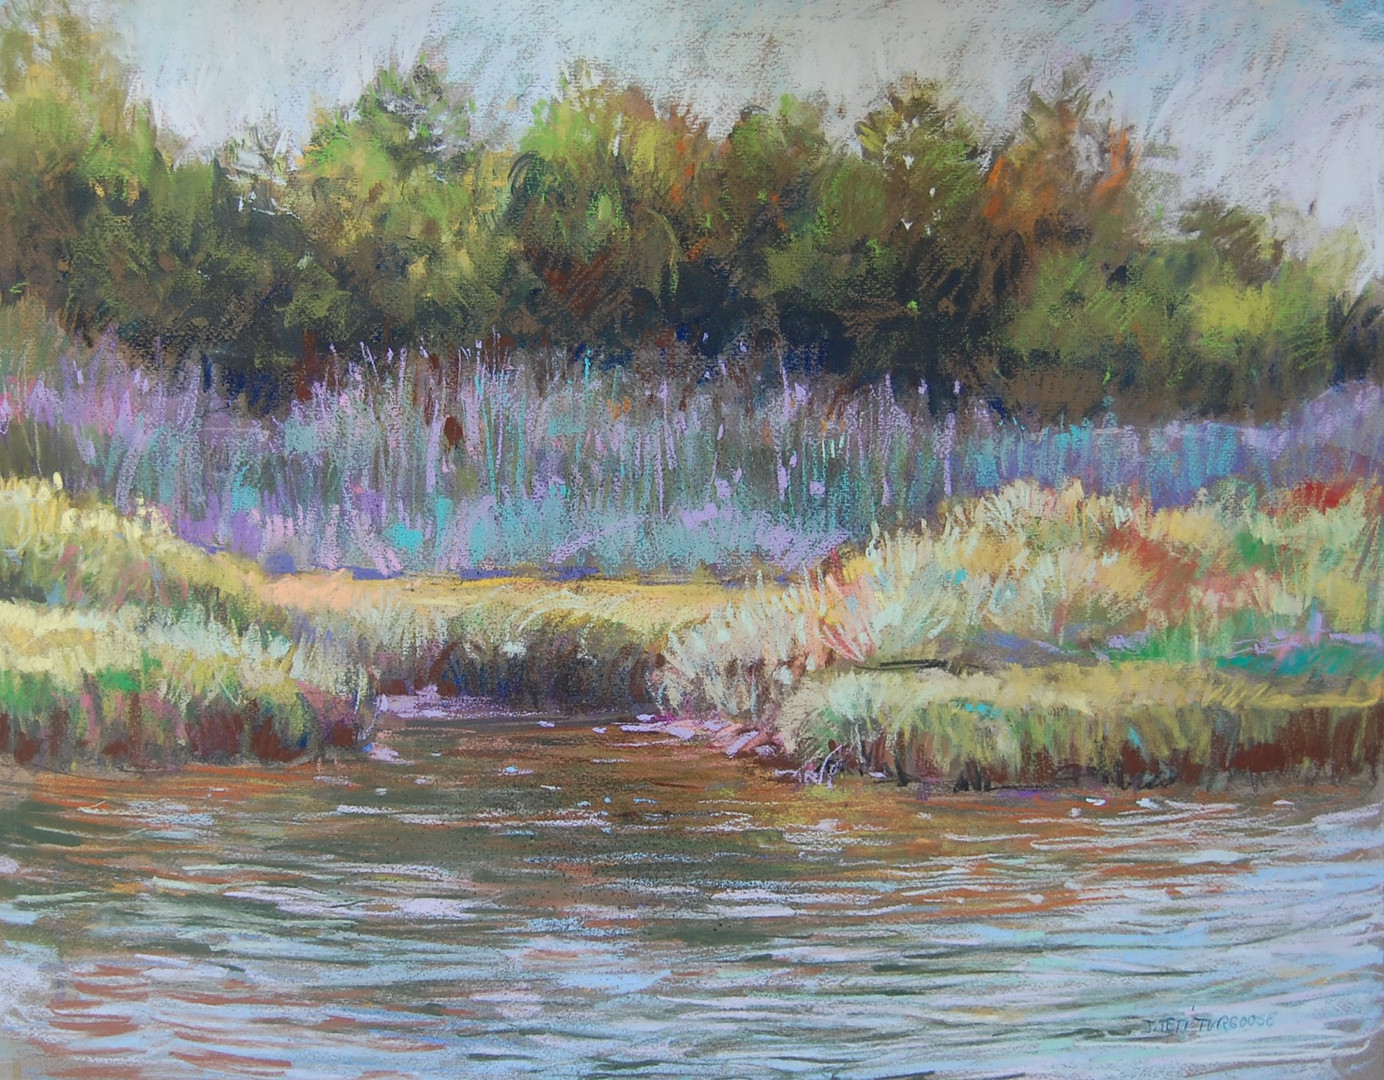 Waves of Color on the Connecticut River